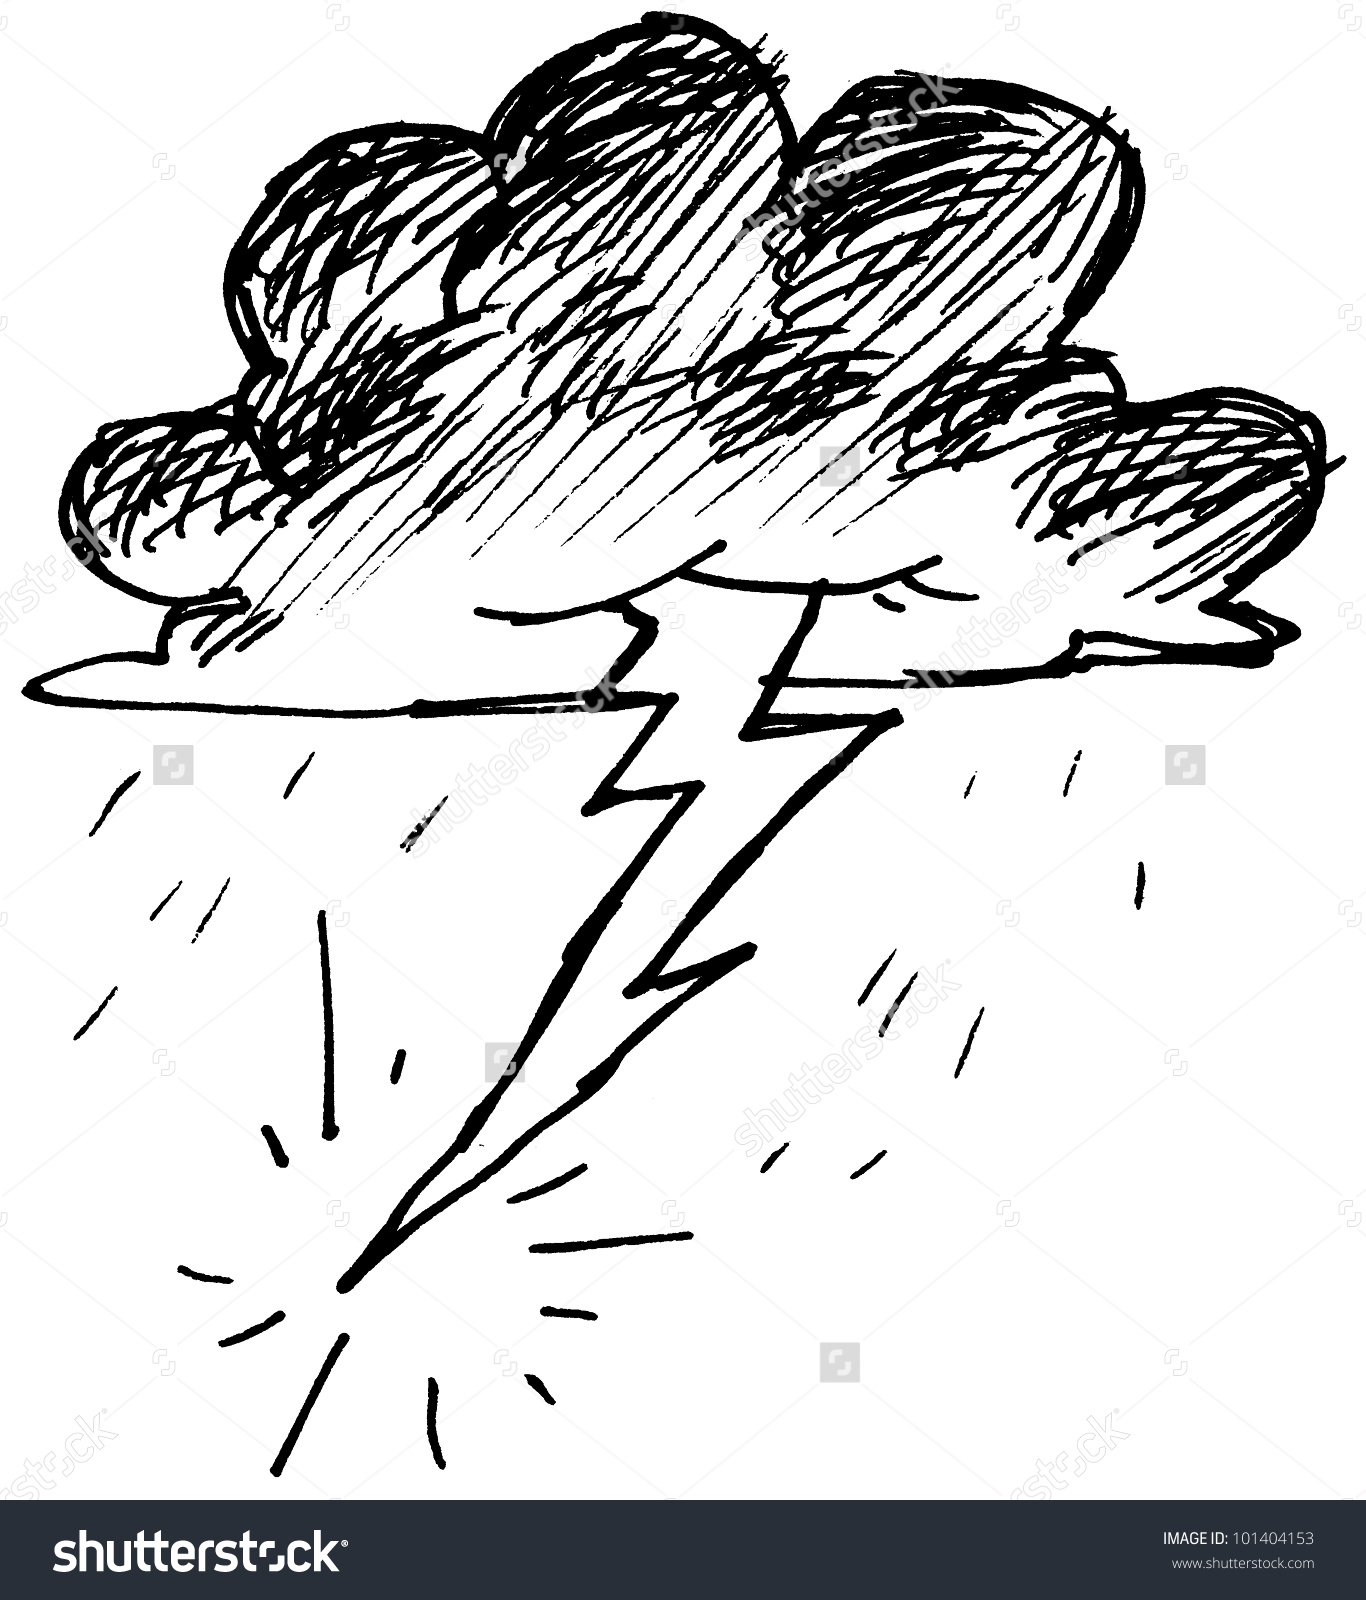 1366x1600 How To Draw Lightning Bolts Step 5. How To Draw A Cartoon